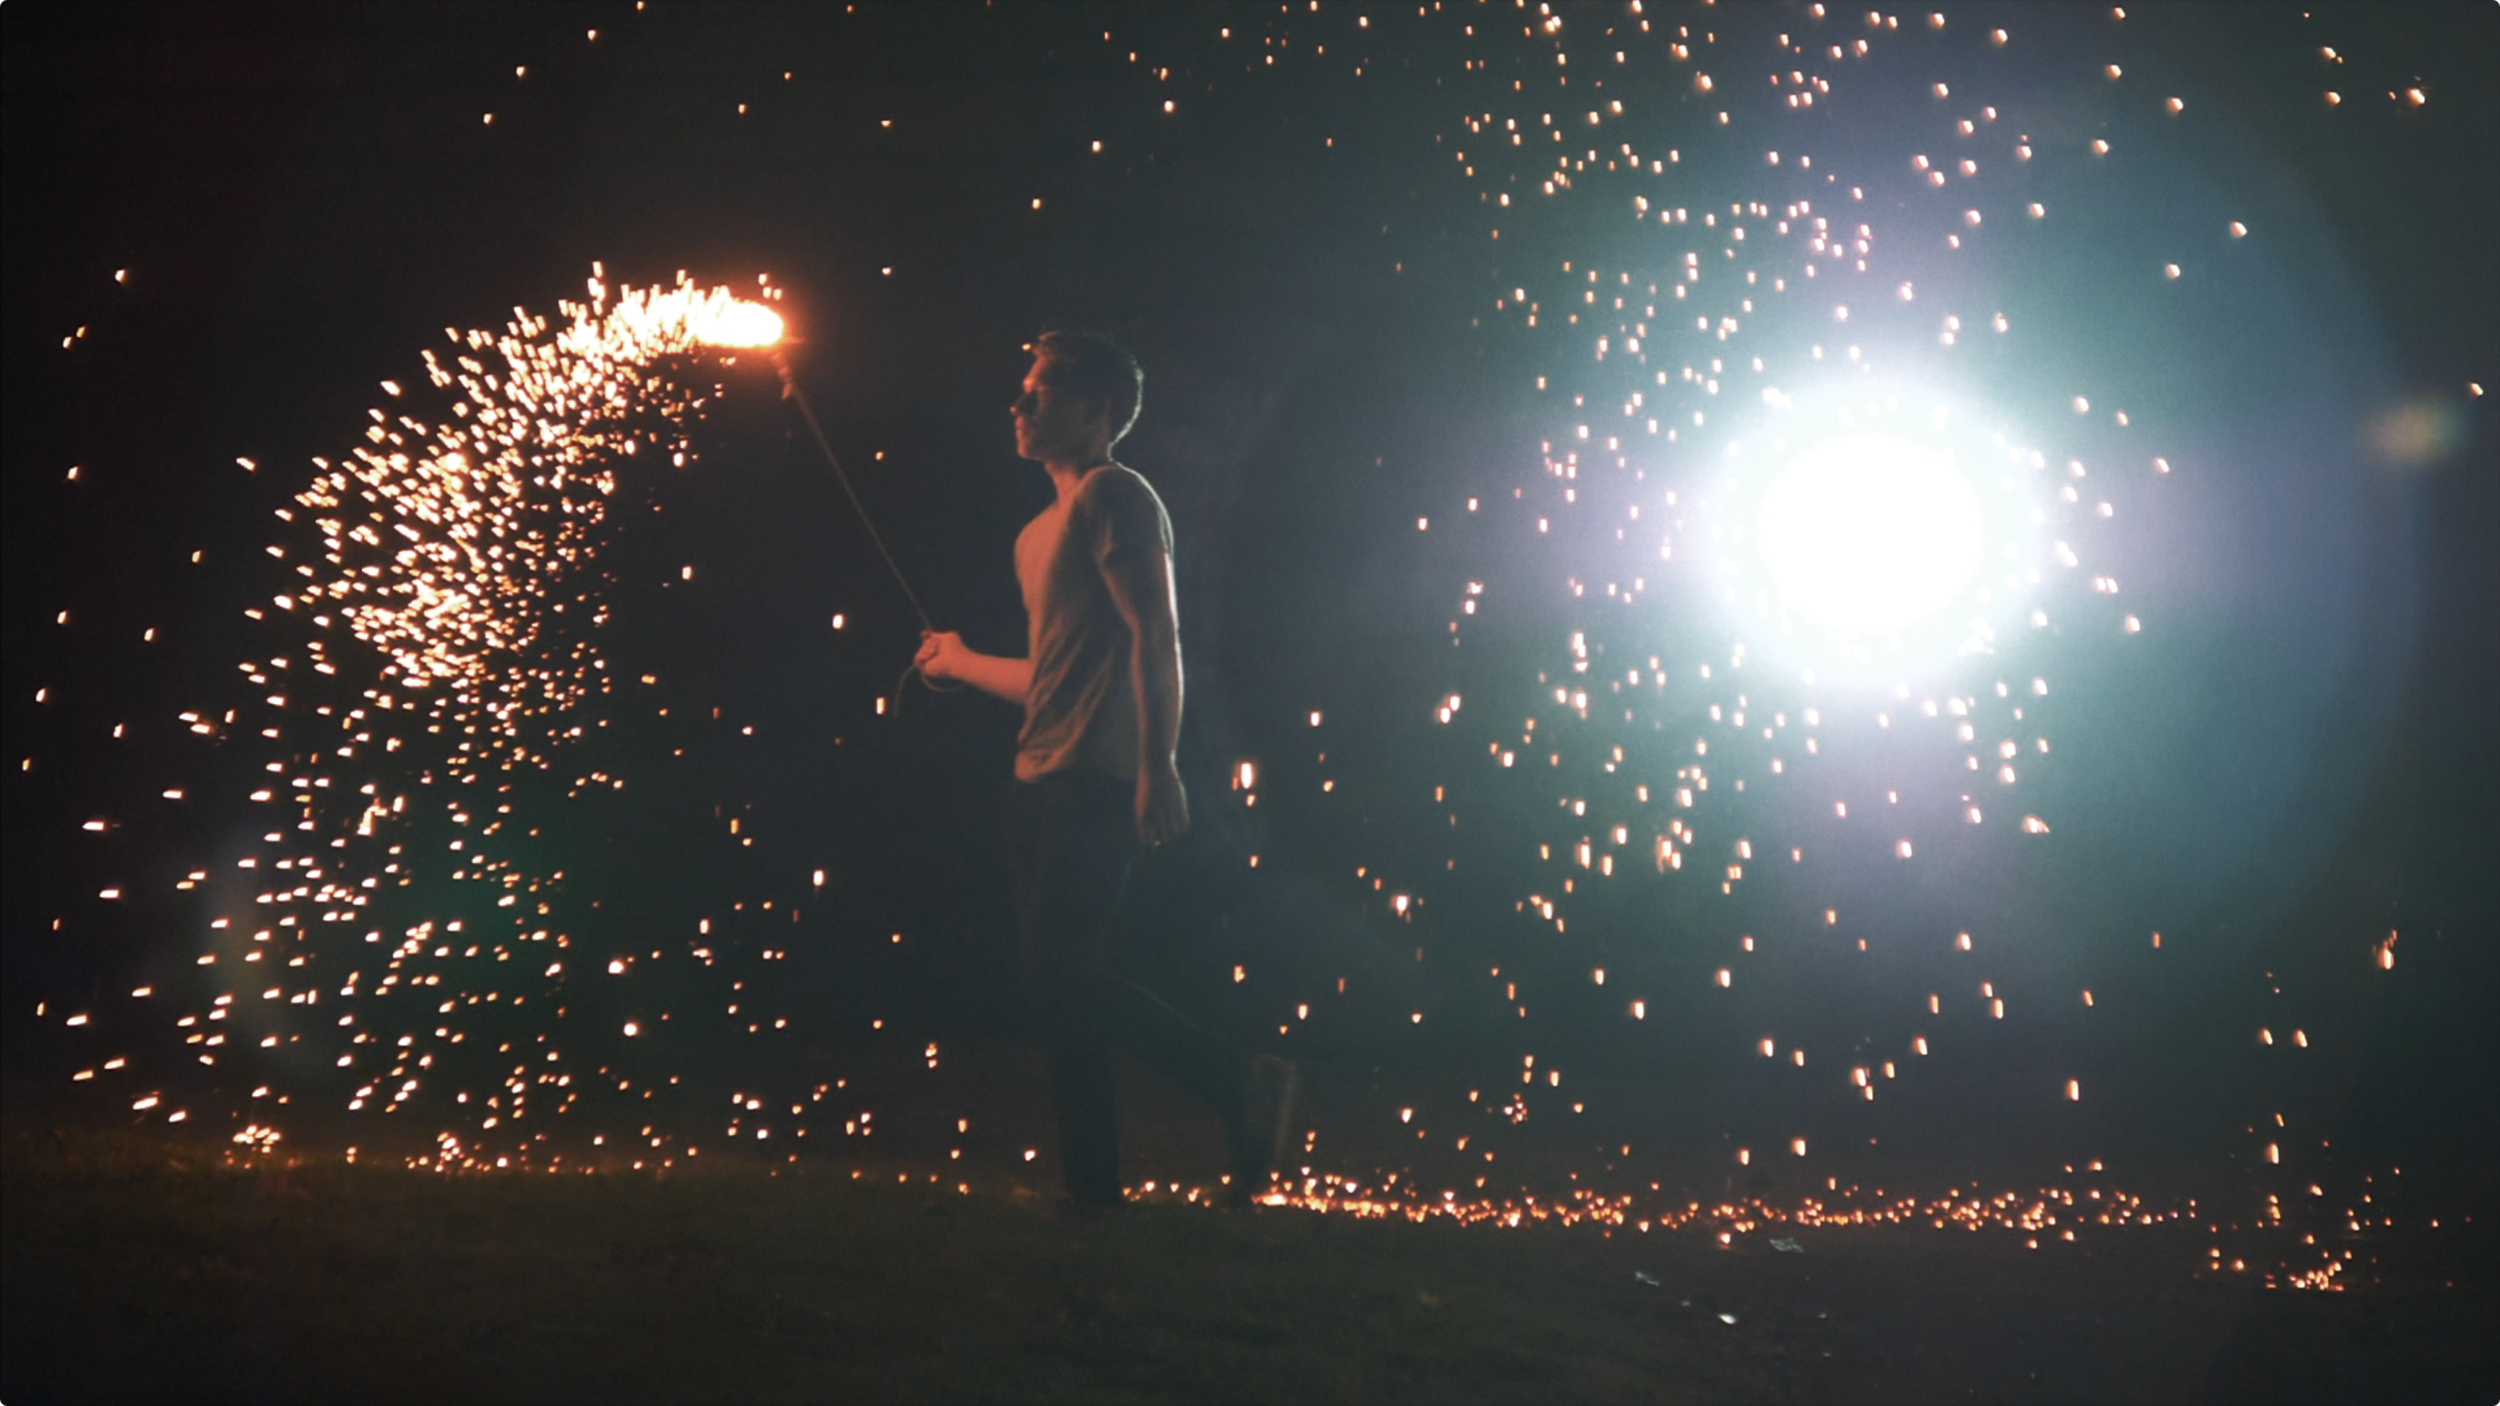 Post color grade indie music video